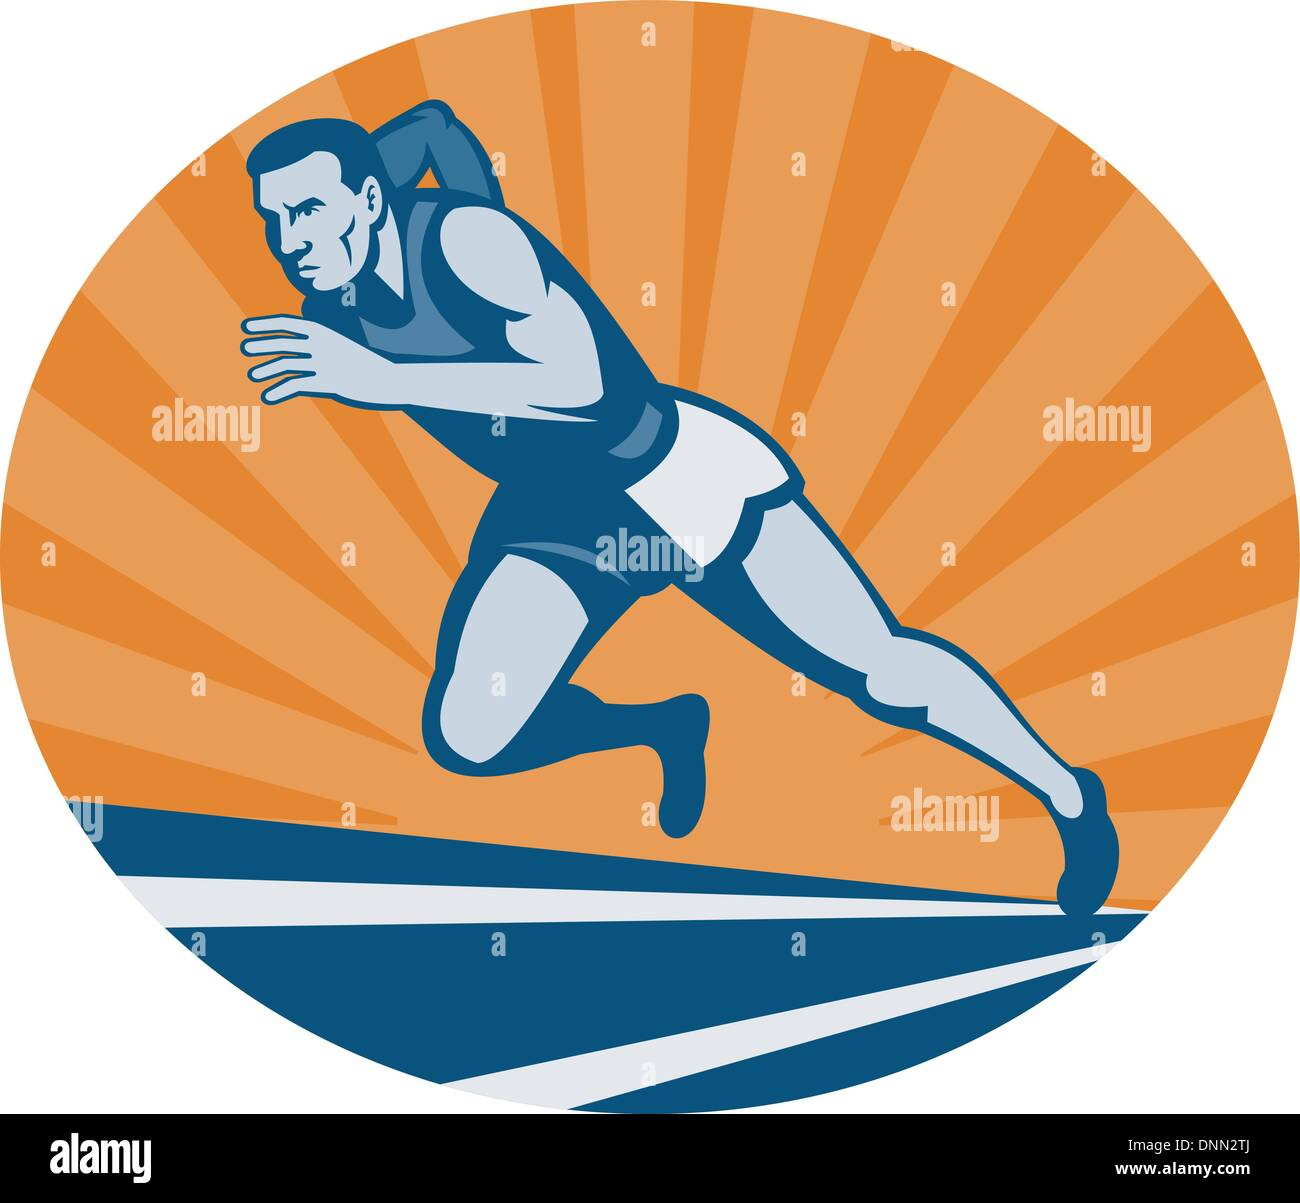 illustration Marathon runner on track with sunburst viewed from an extremely low angle. Stock Vector